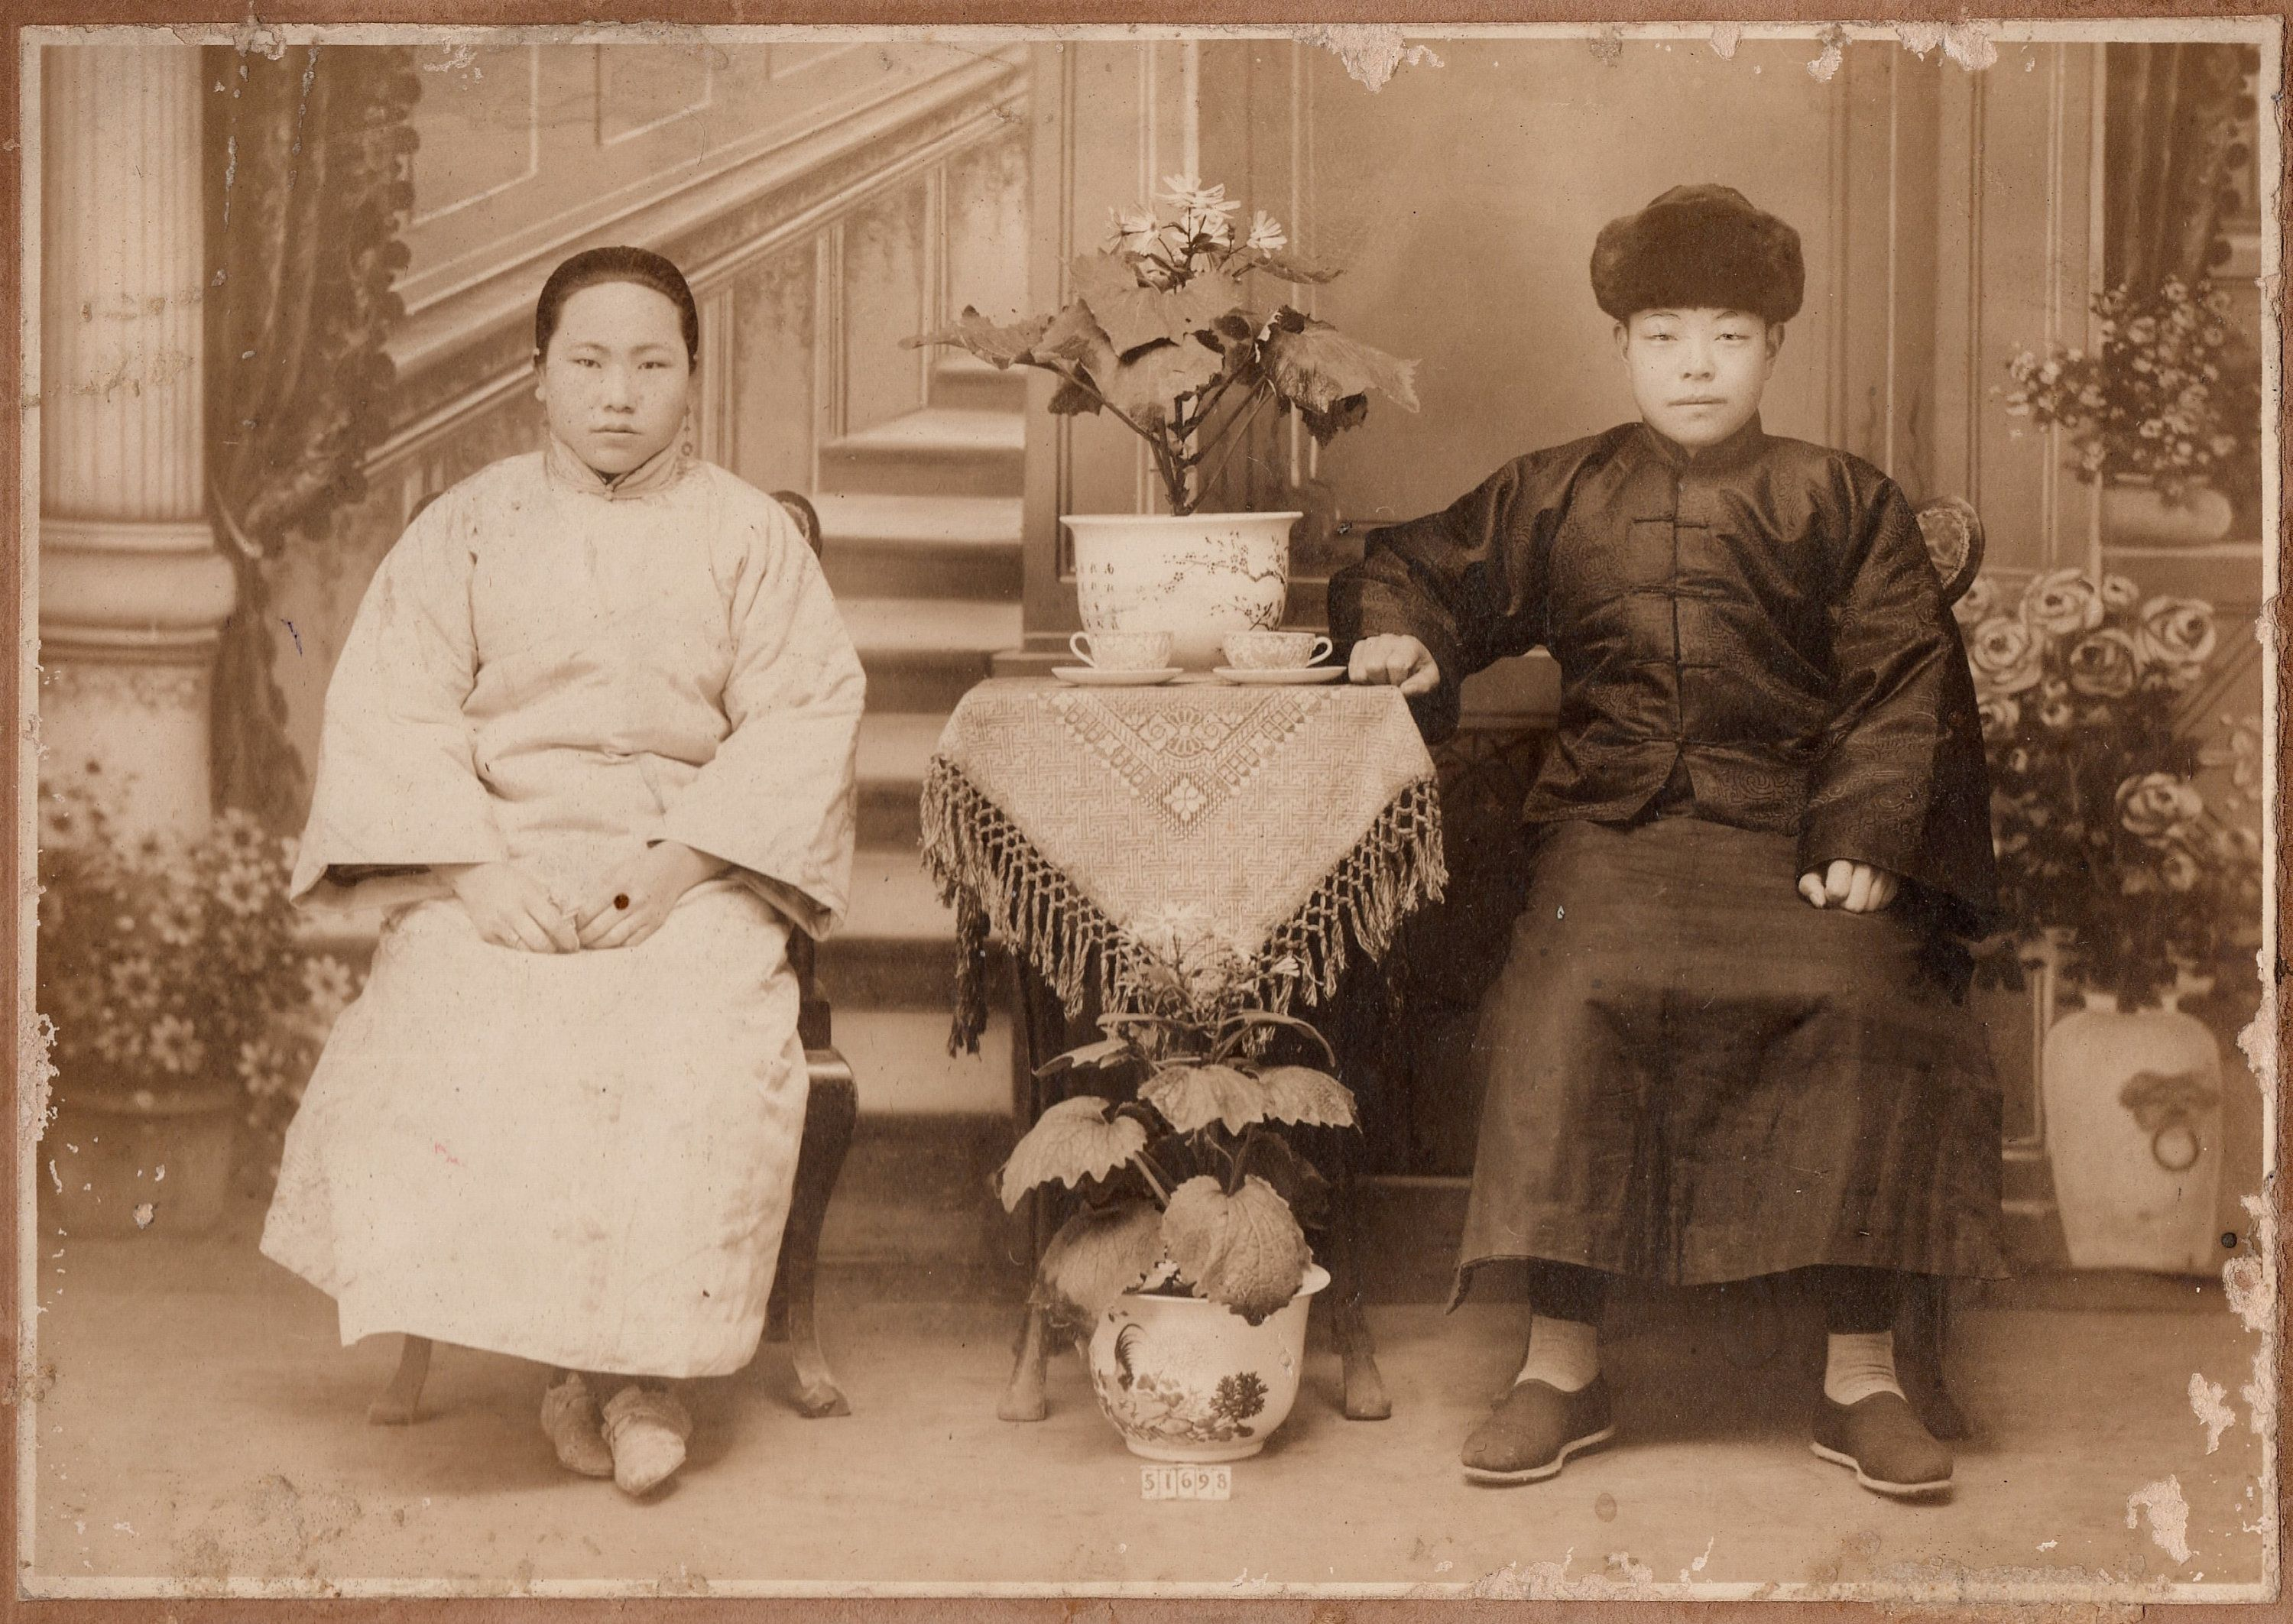 1880s Early Chinese Photo Qing Era Carte De Visite Wedding Portrait Black White Photograph China CDV Photography Antiques